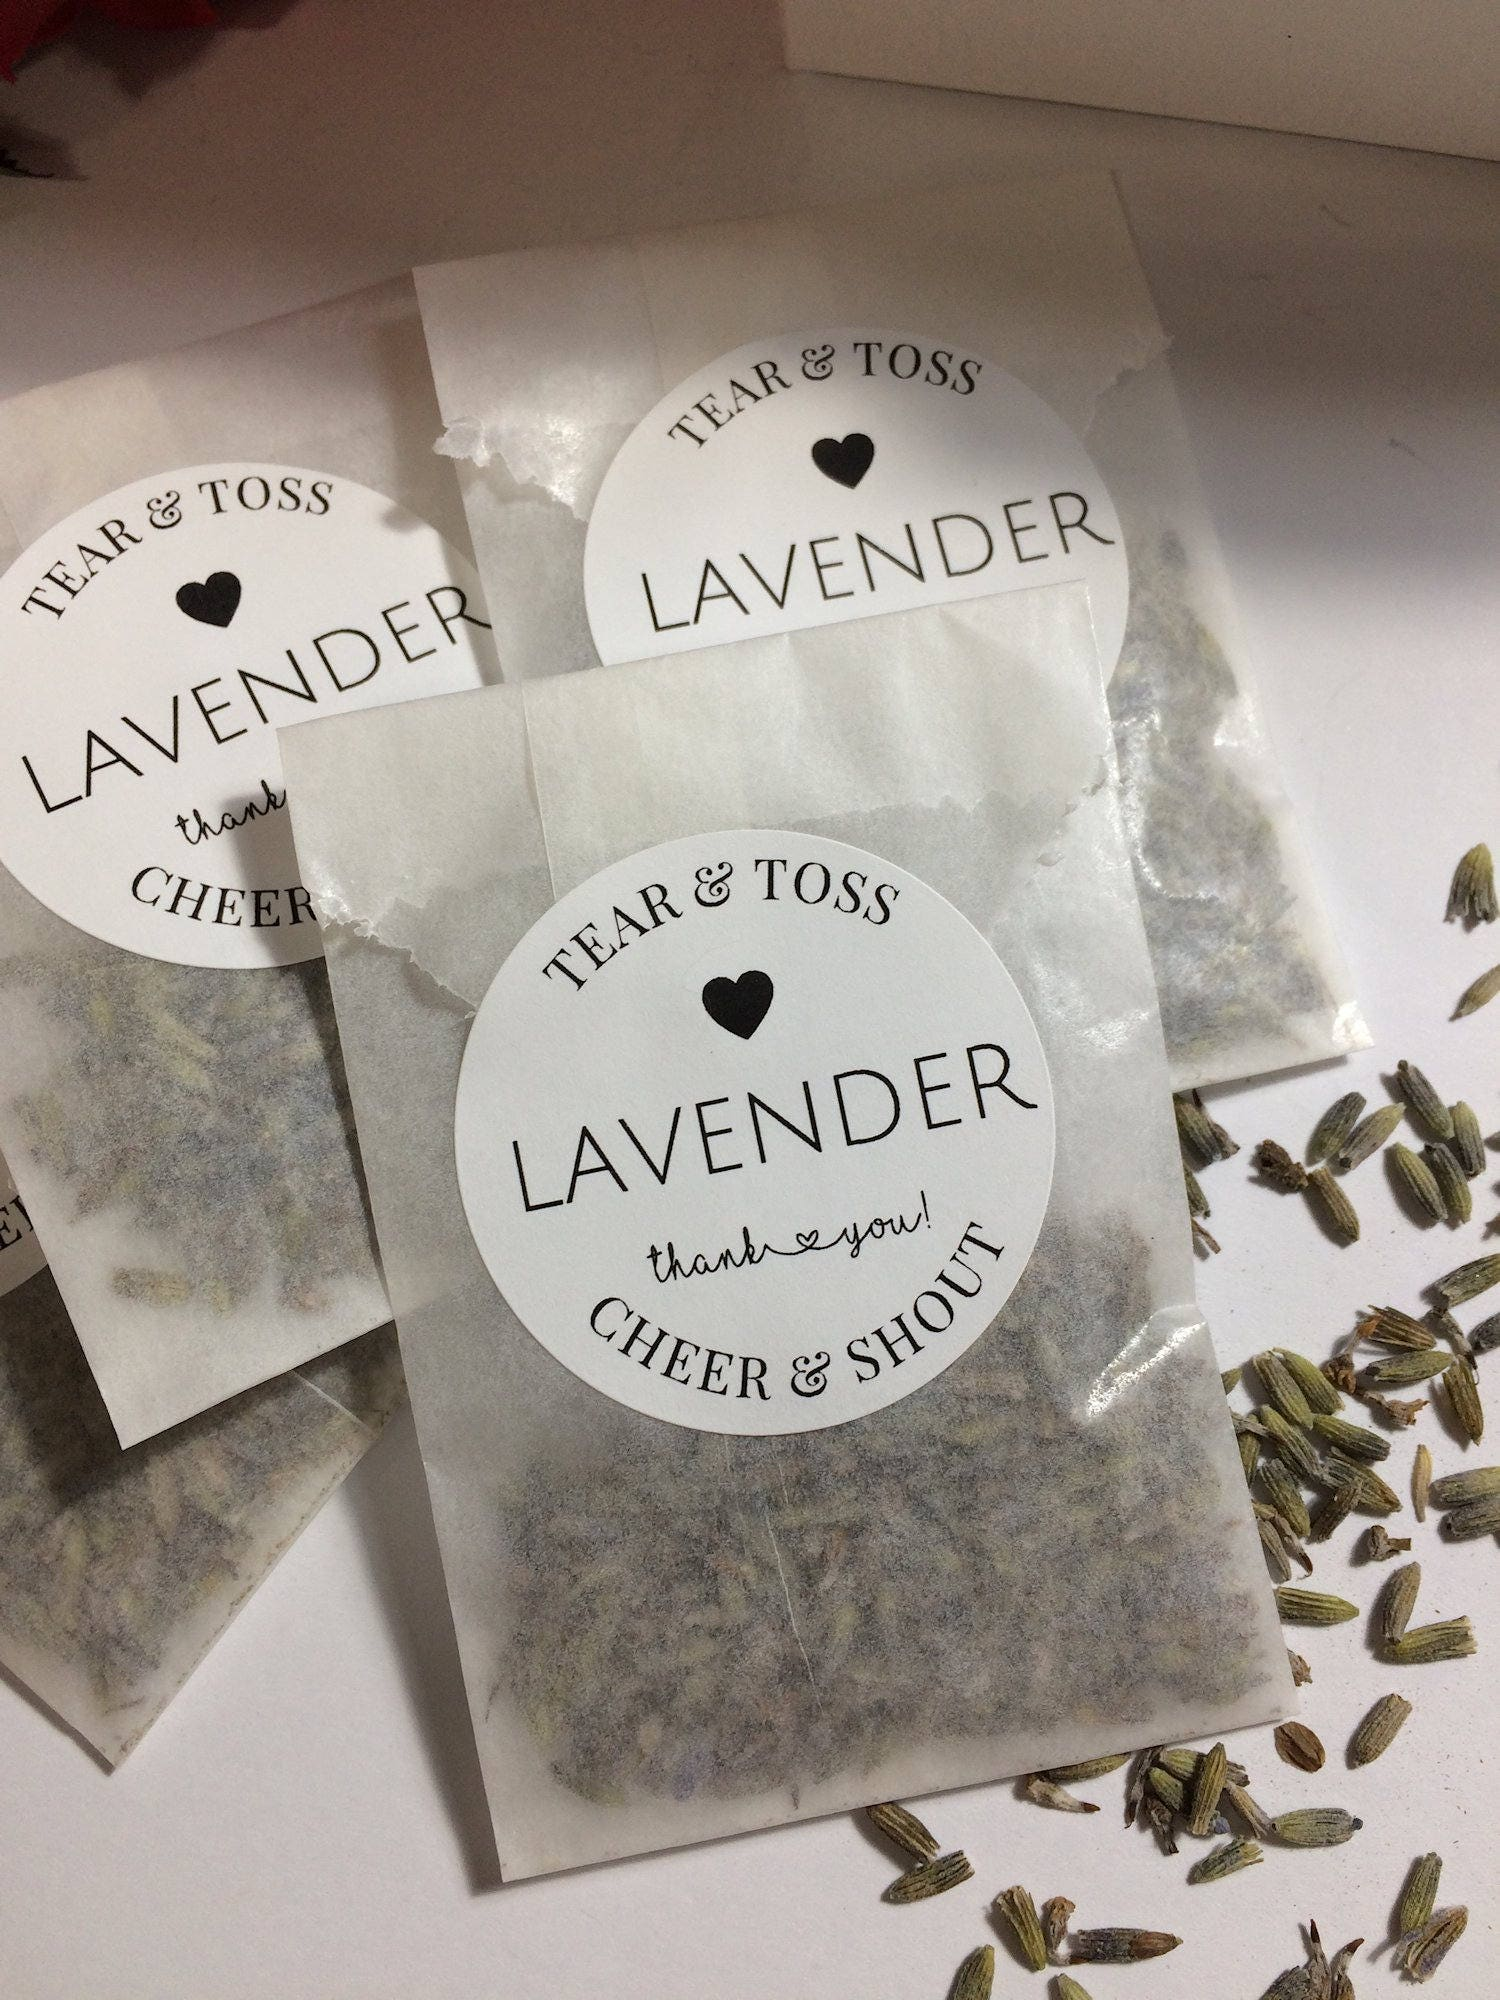 Lavender Wedding Favors in Display Box Eco-Friendly Ready to